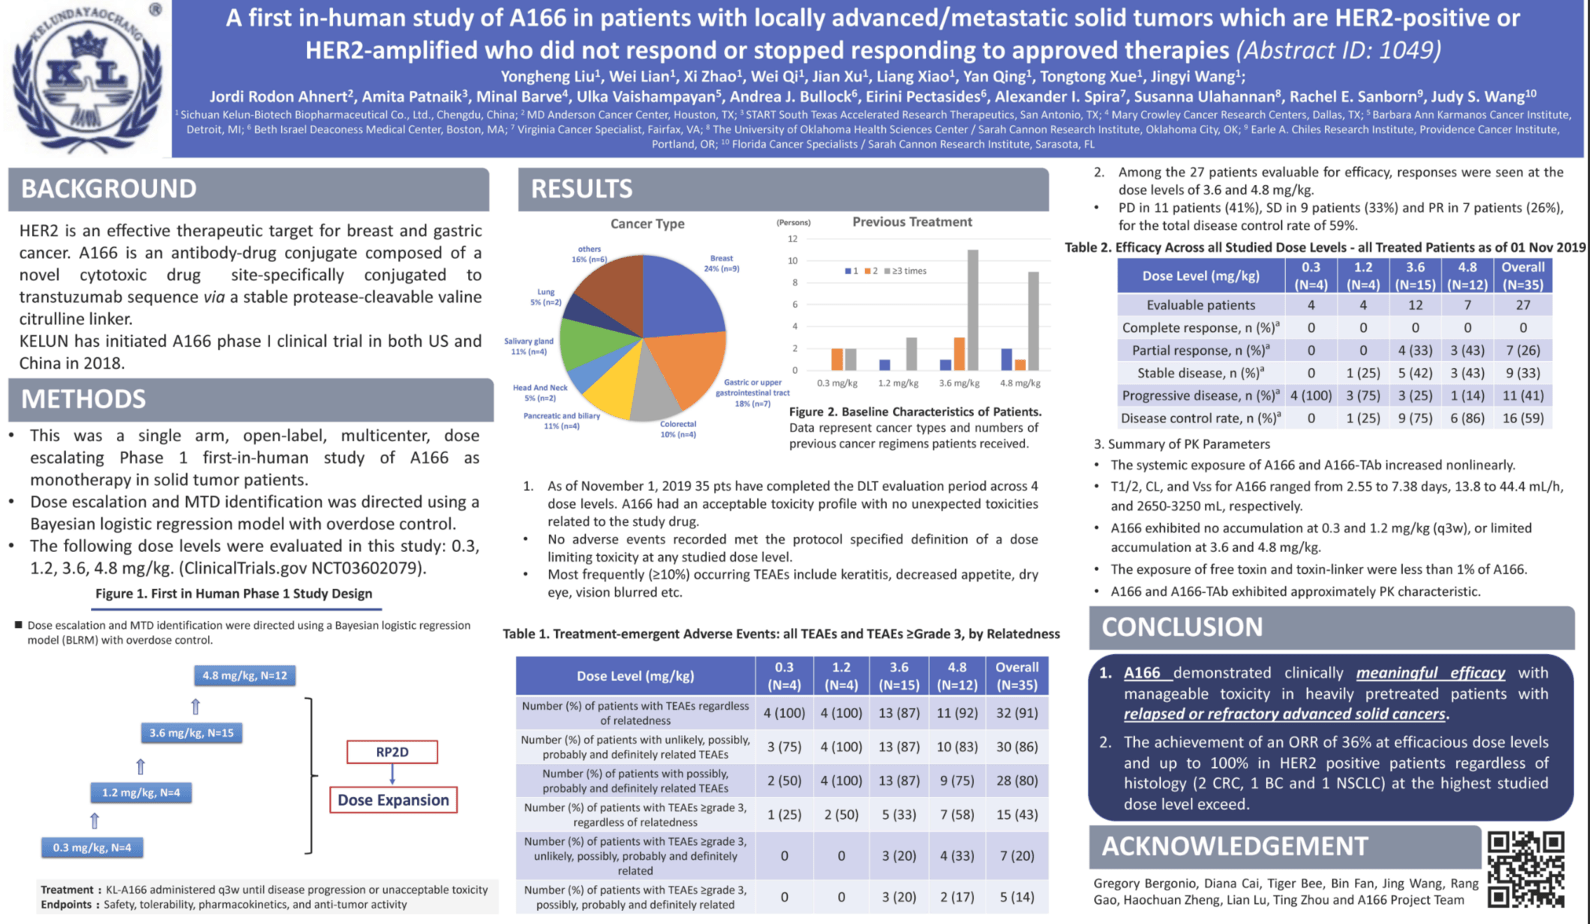 Poster #1049: A first in-human study of A166 in patients with locally advanced/metastatic solid tumors which are HER2-positive or HER2-amplified who did not respond or stopped responding to approved therapies.